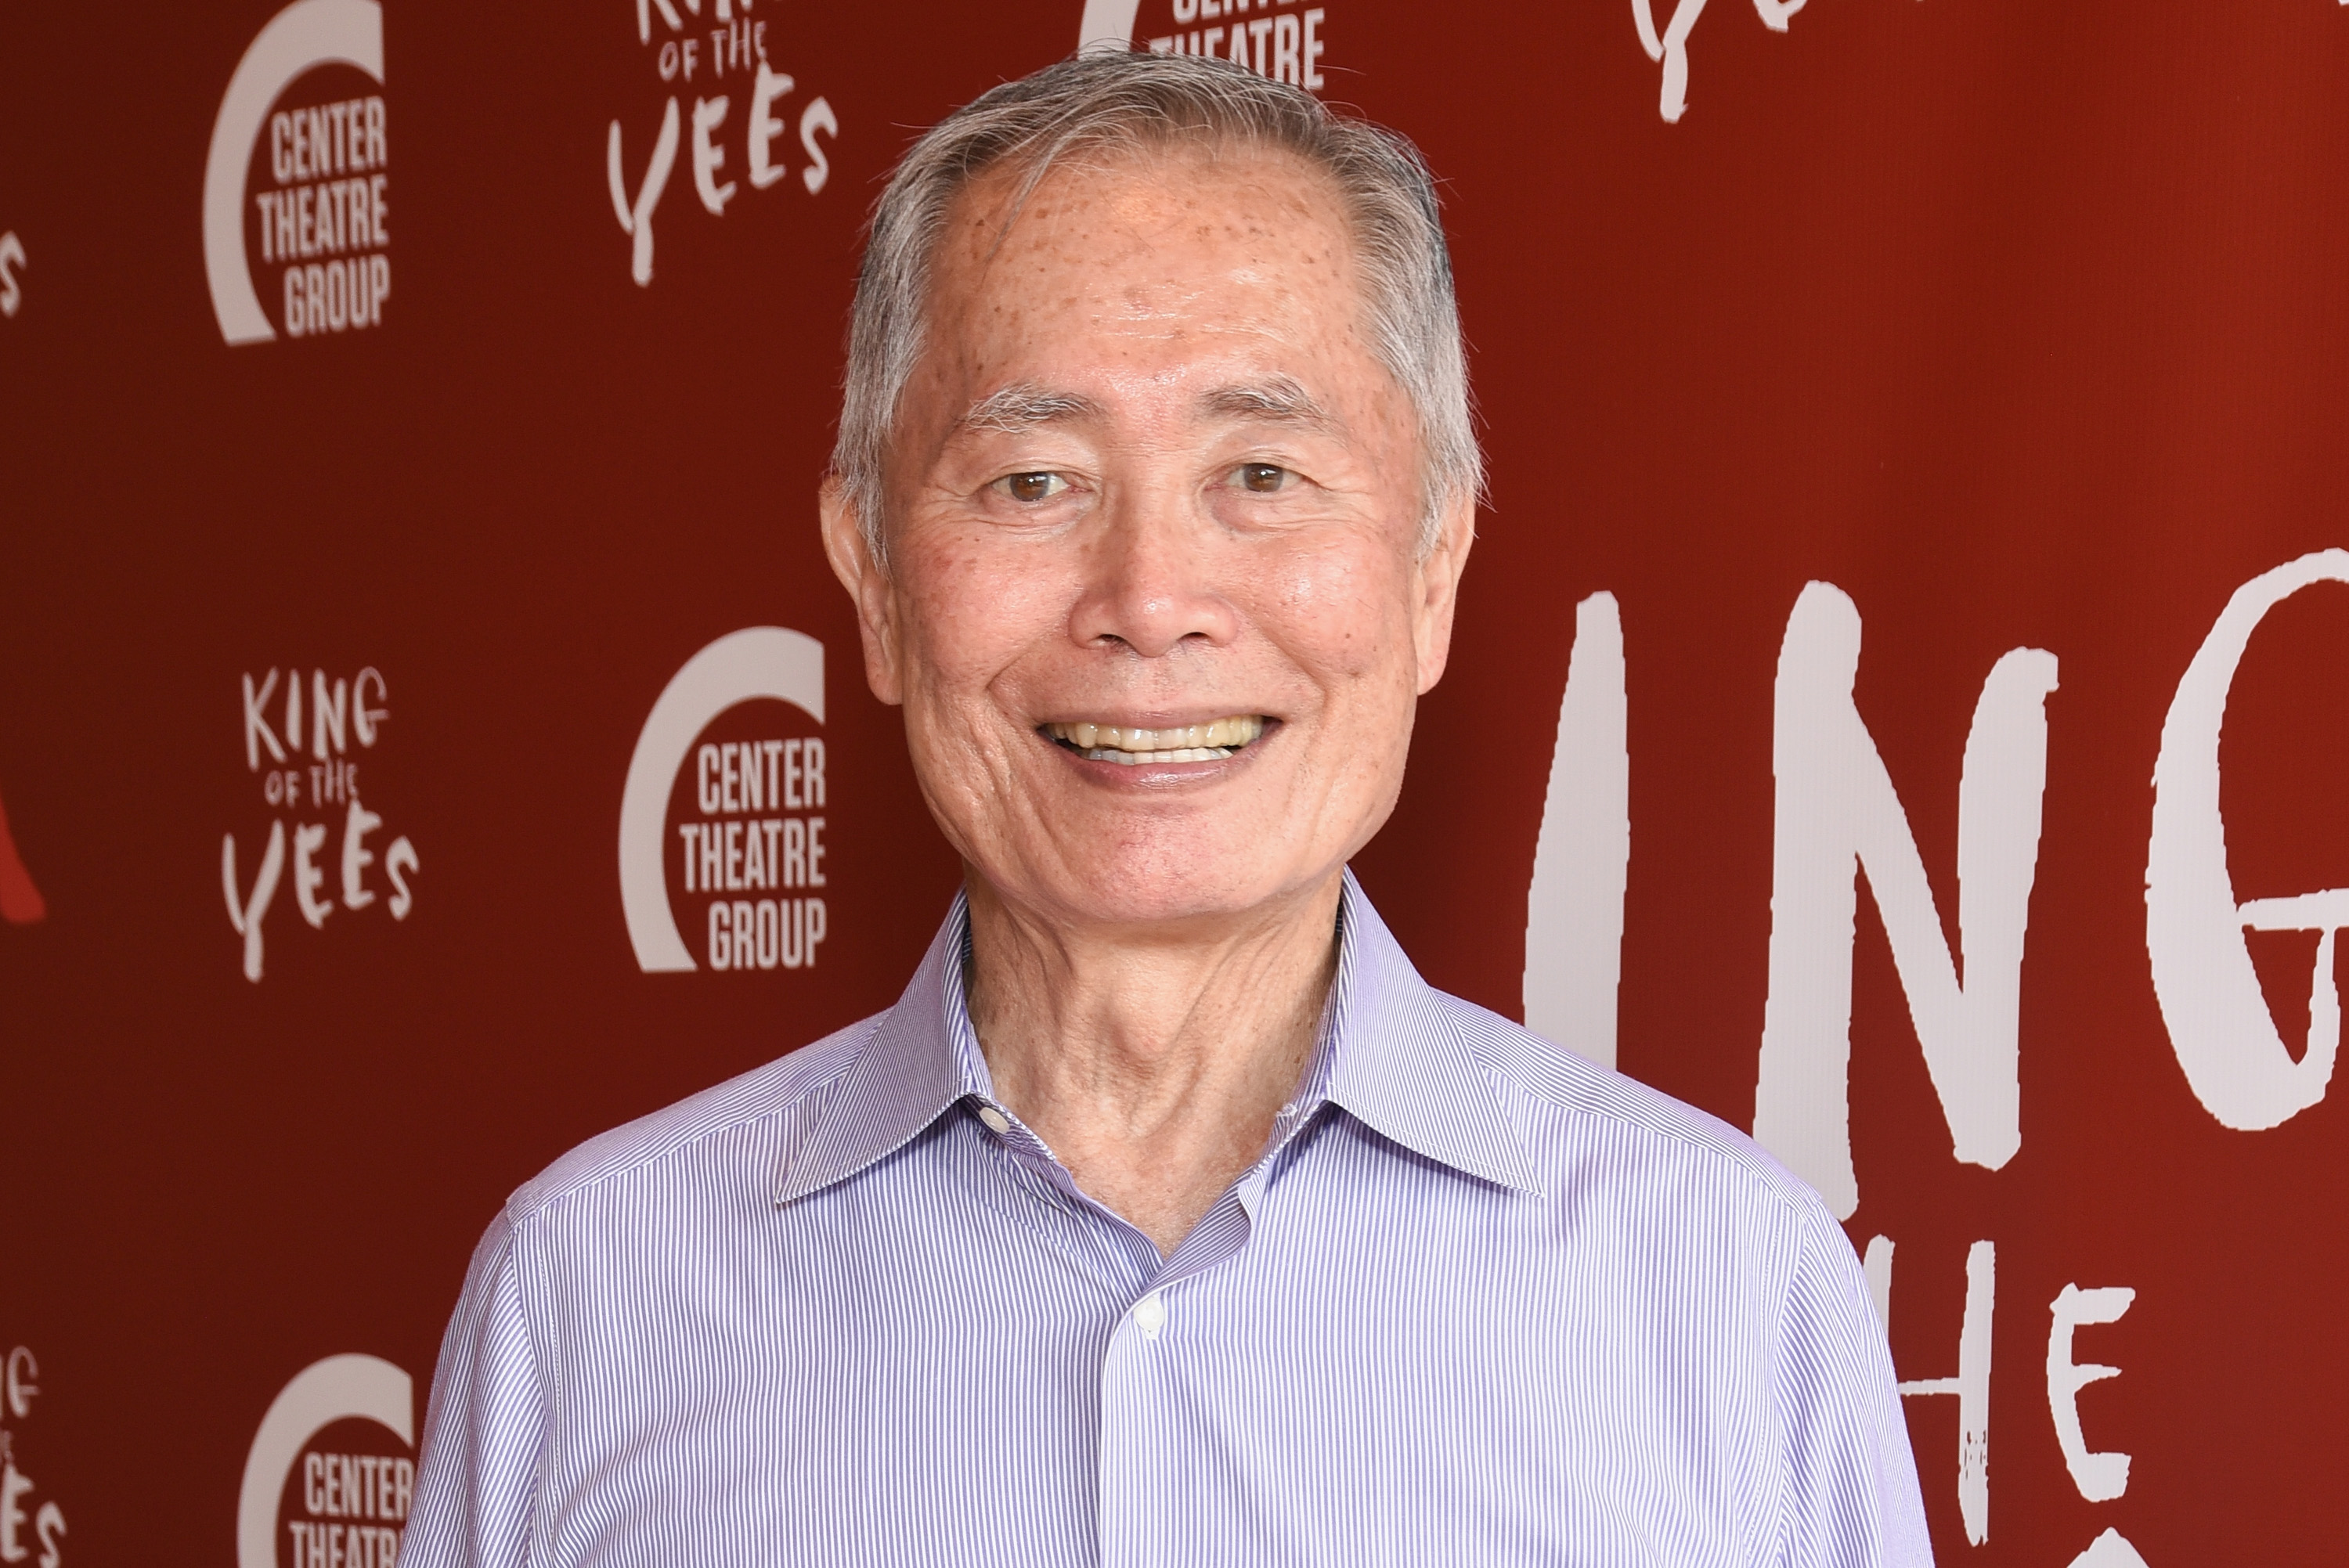 George Takei attends opening night of 'King Of The Yees' at Kirk Douglas Theatre in Culver City, Calif., on July 16, 2017.